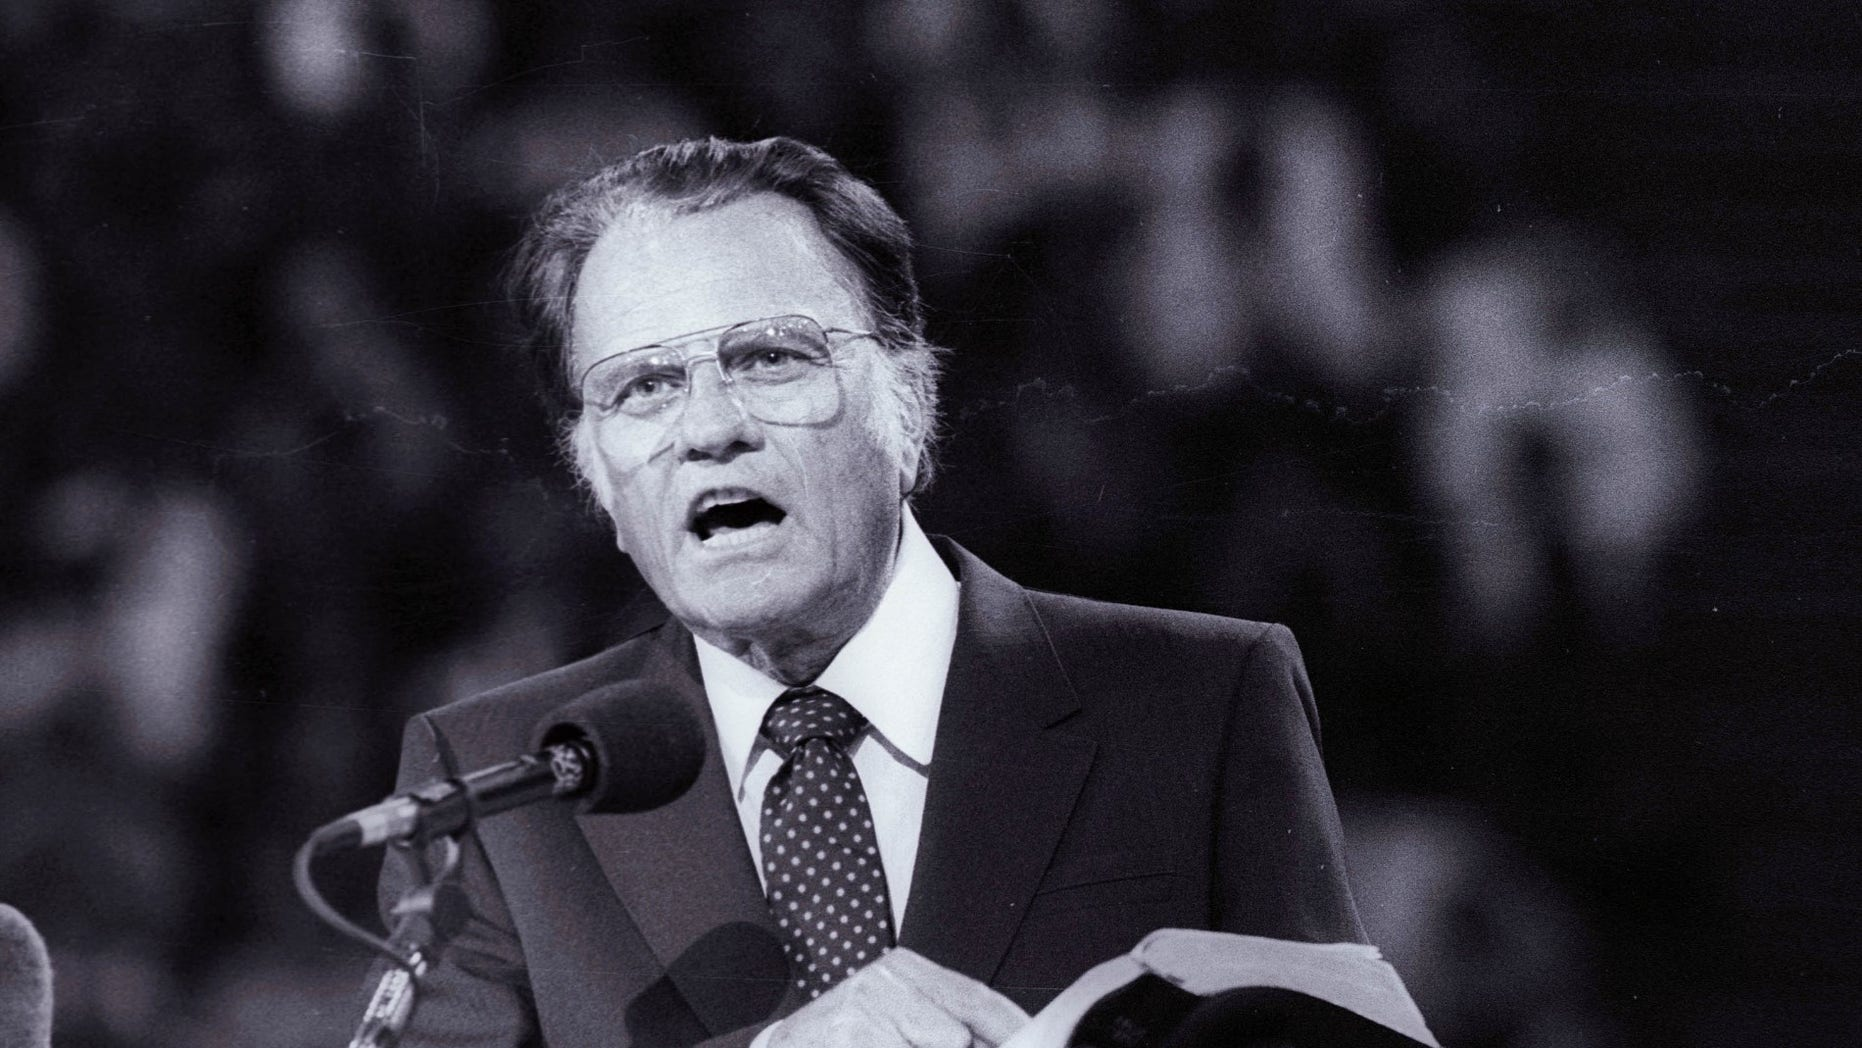 FILE -- US evangelist Billy Graham preaches the Gospel to thousands of believers during tonight's meeting at Bercy's Stadium in Paris as part of a worldwide crusade, September 20, 1986.